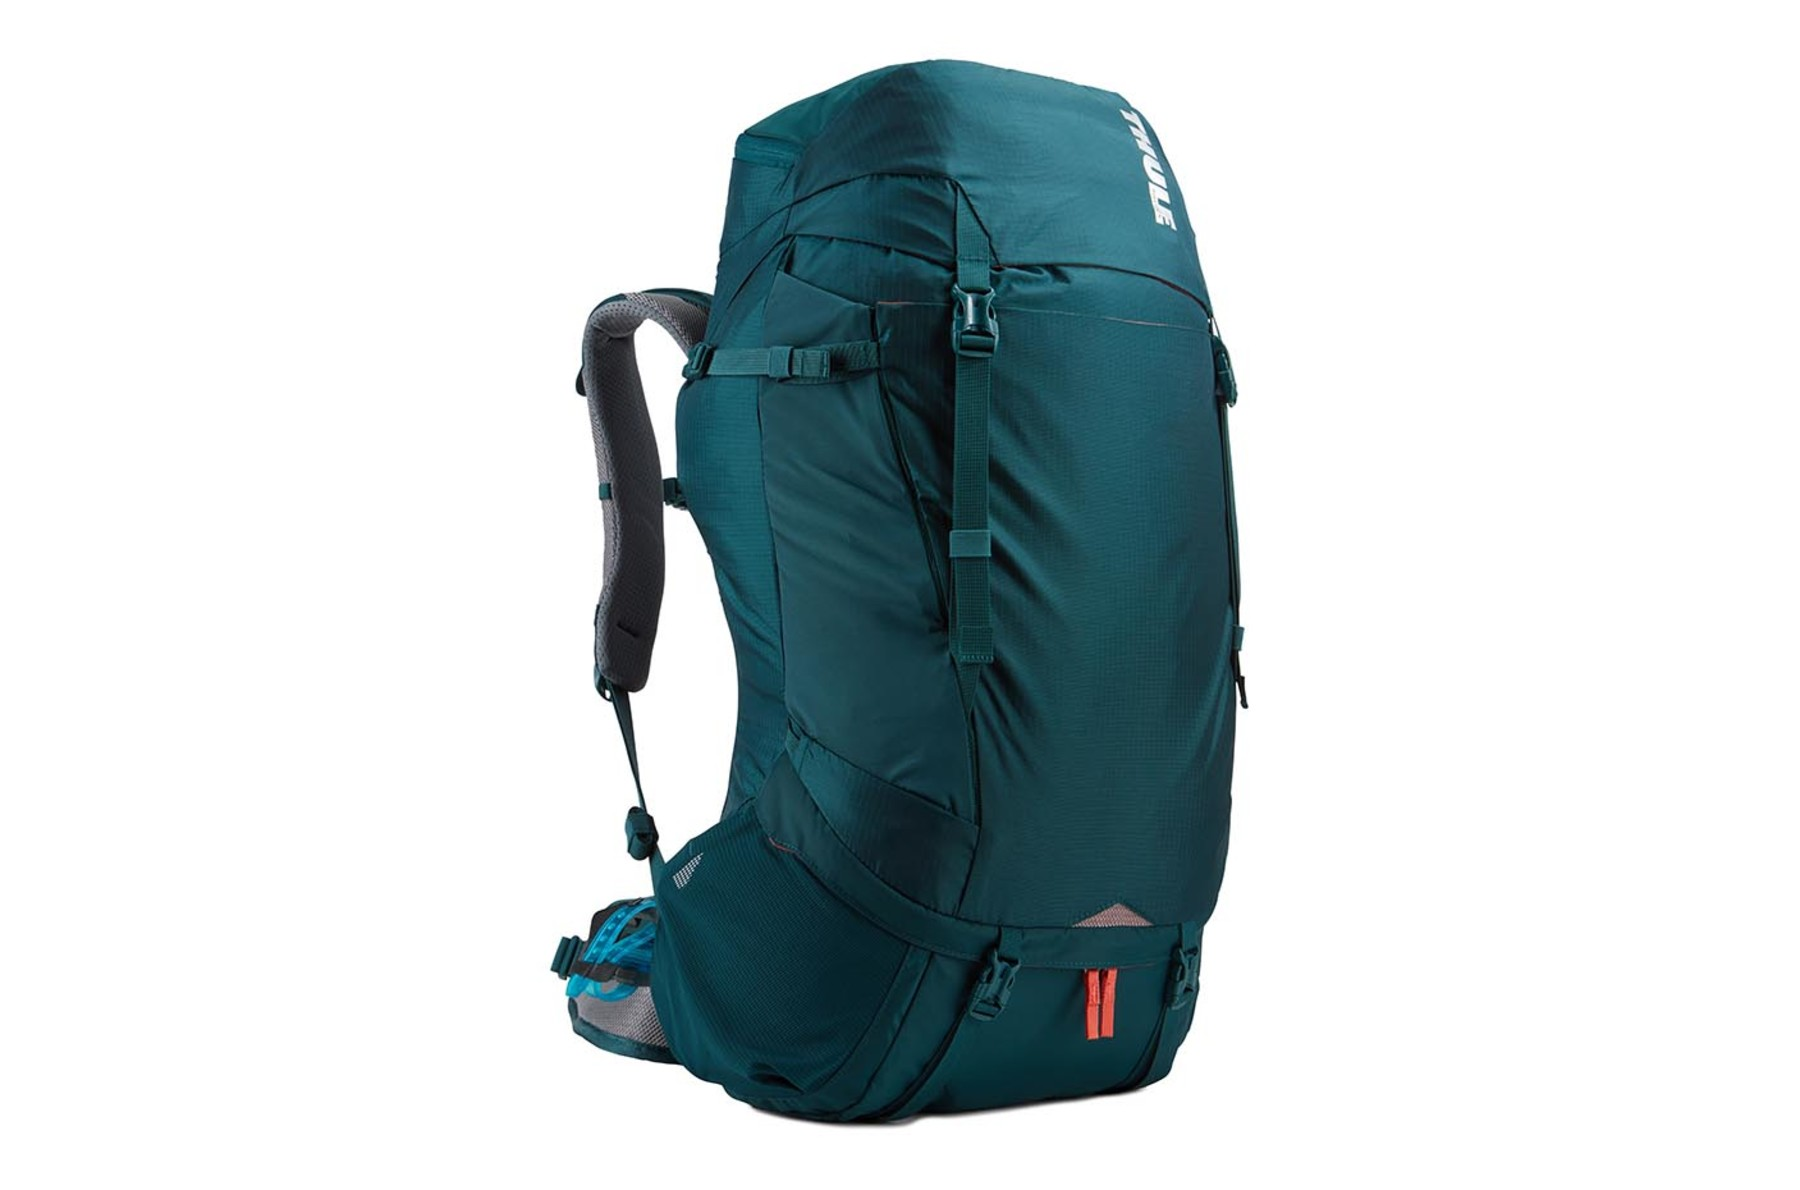 6d51c4a4df Hiking backpack-Thule Capstone 50L Women s